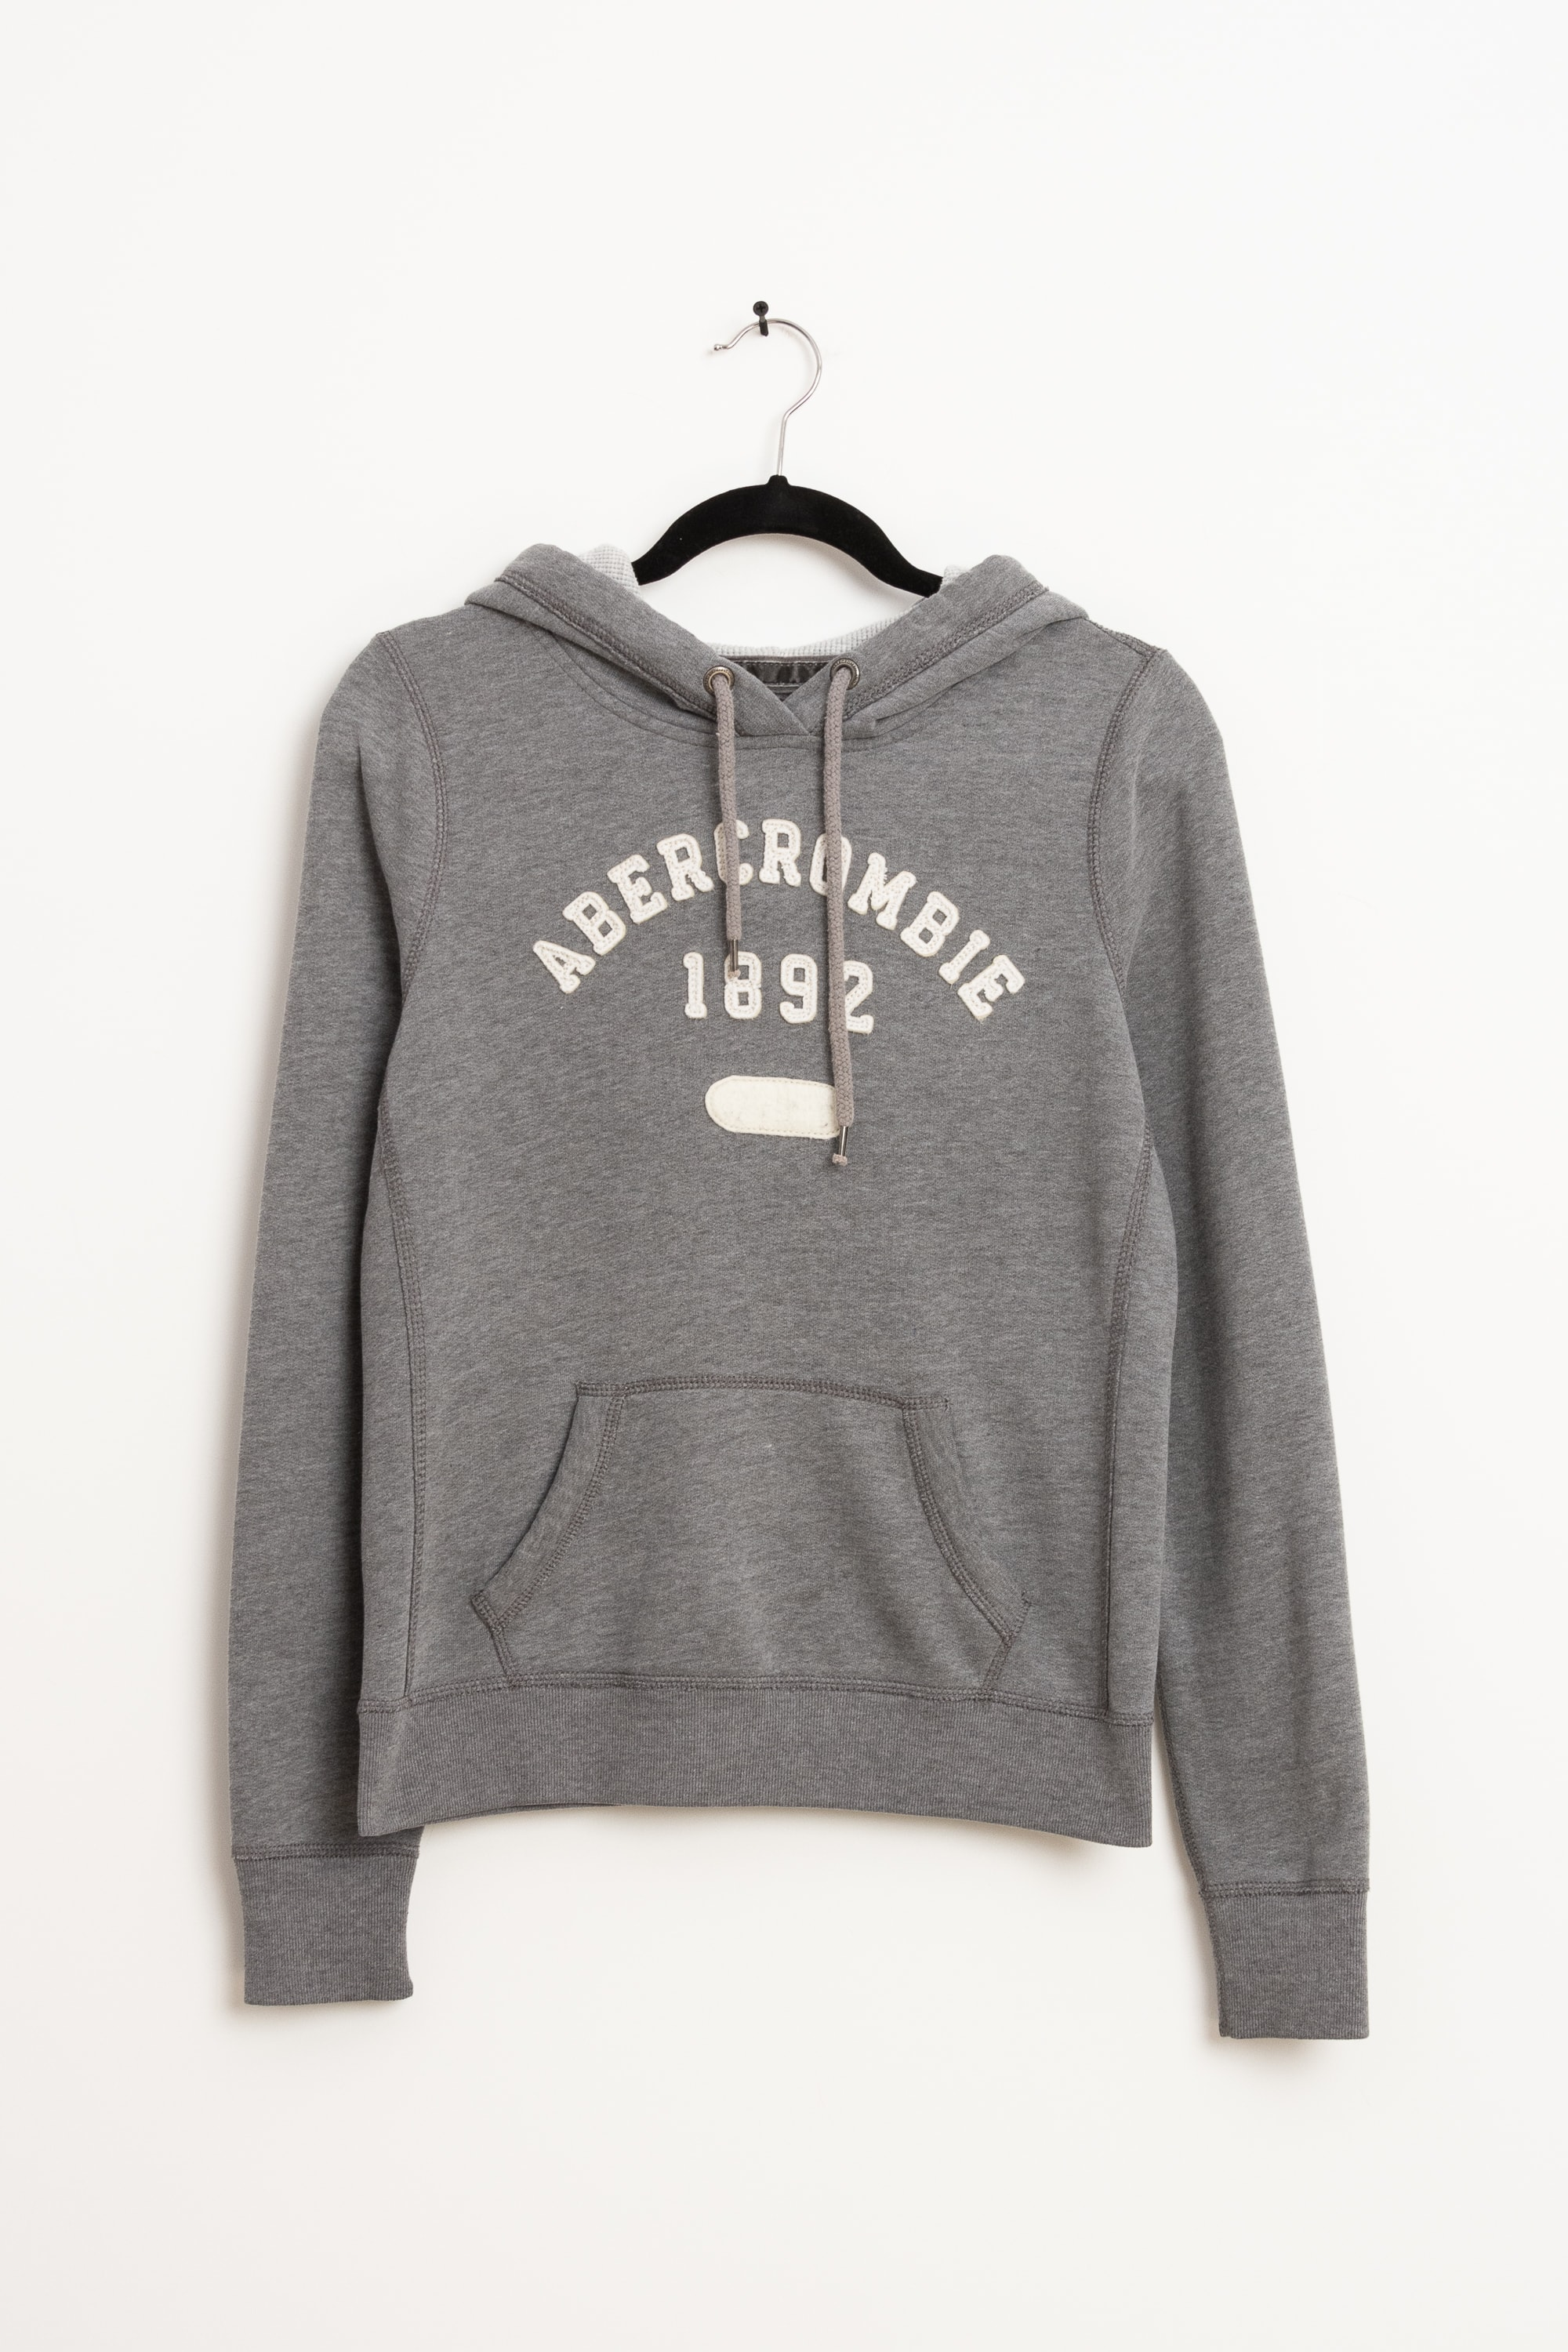 Abercrombie & Fitch Sweat / Fleece Grau Gr.M